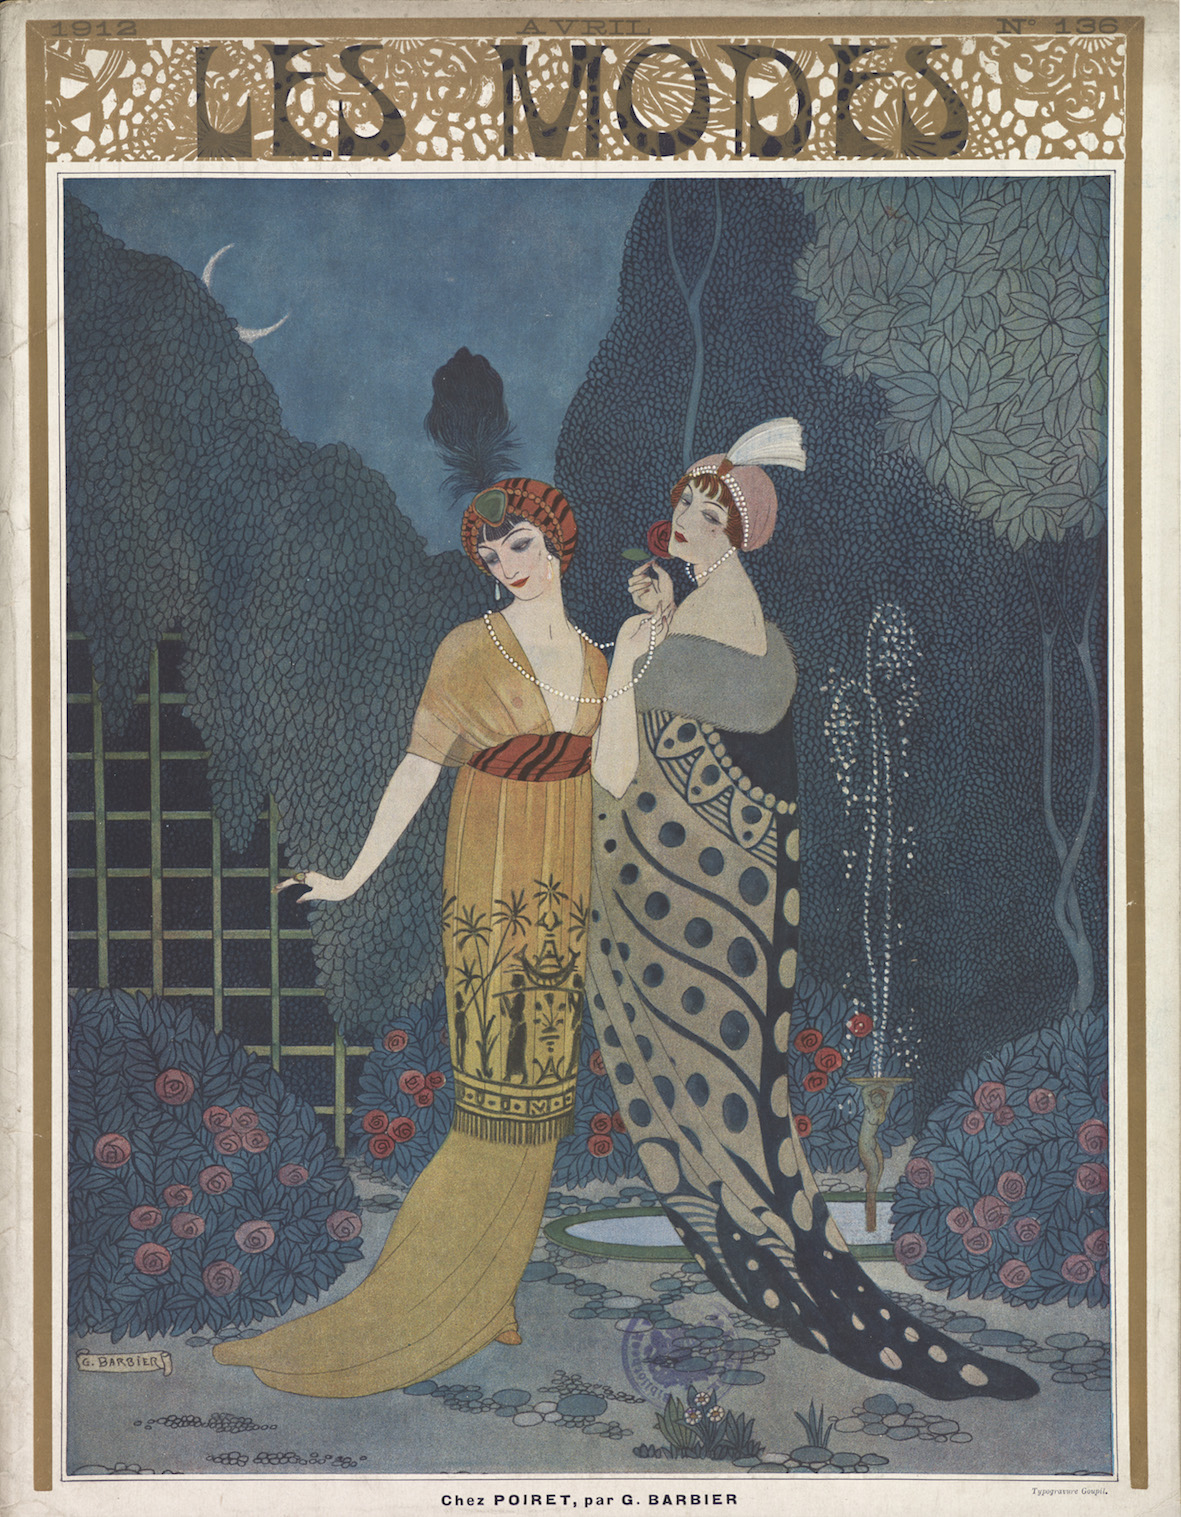 'Chez Poiret', cover of Les Modes, with designs by Paul Poiret, drawn by Georges Barbier, April 1912. Gemeentemuseum Den Haag